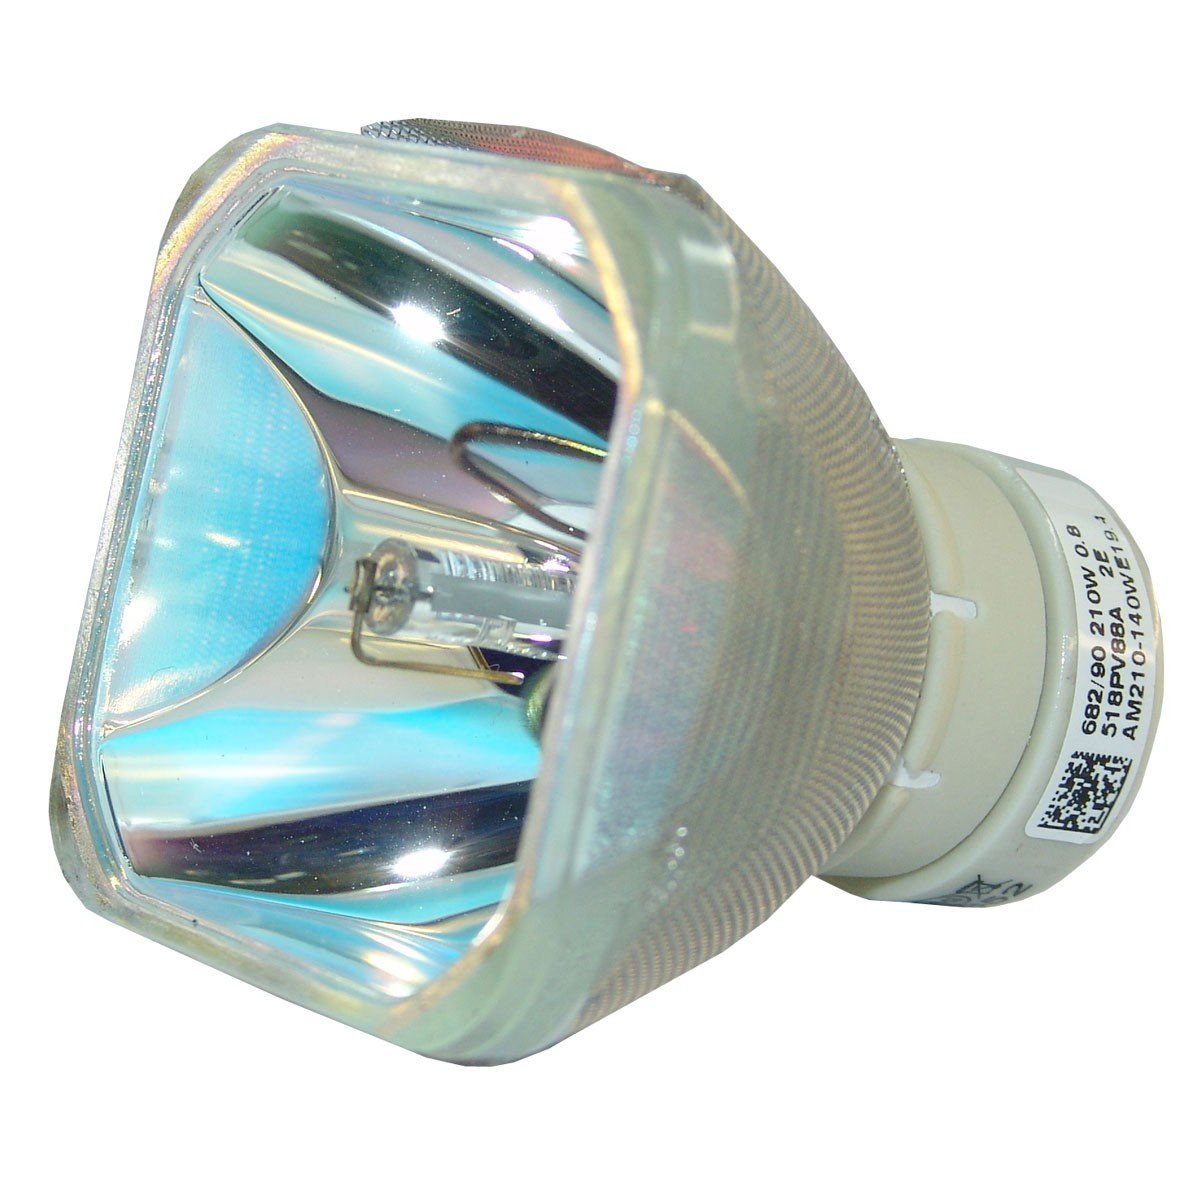 210 Watt Projector Bulb Replacement without cage assembly Projector Bulb